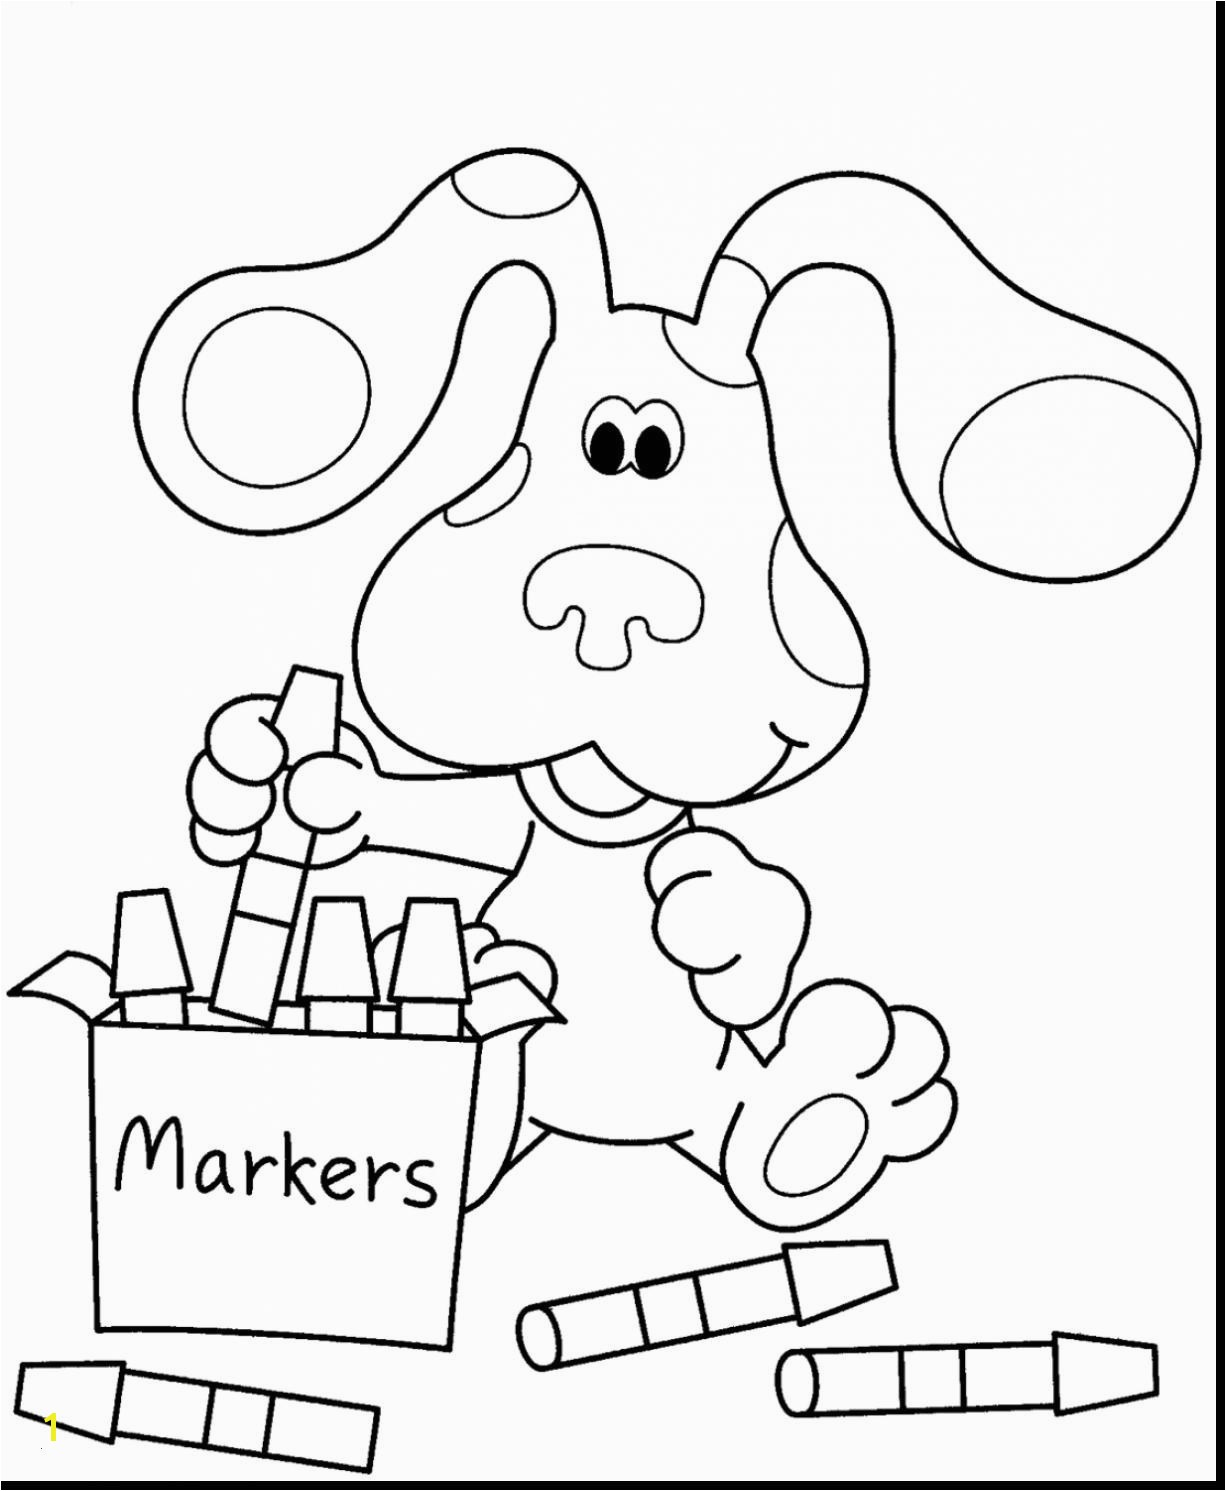 Unique Nick Jr Coloring Book Coloring Pagesnickjr Coloring Pages